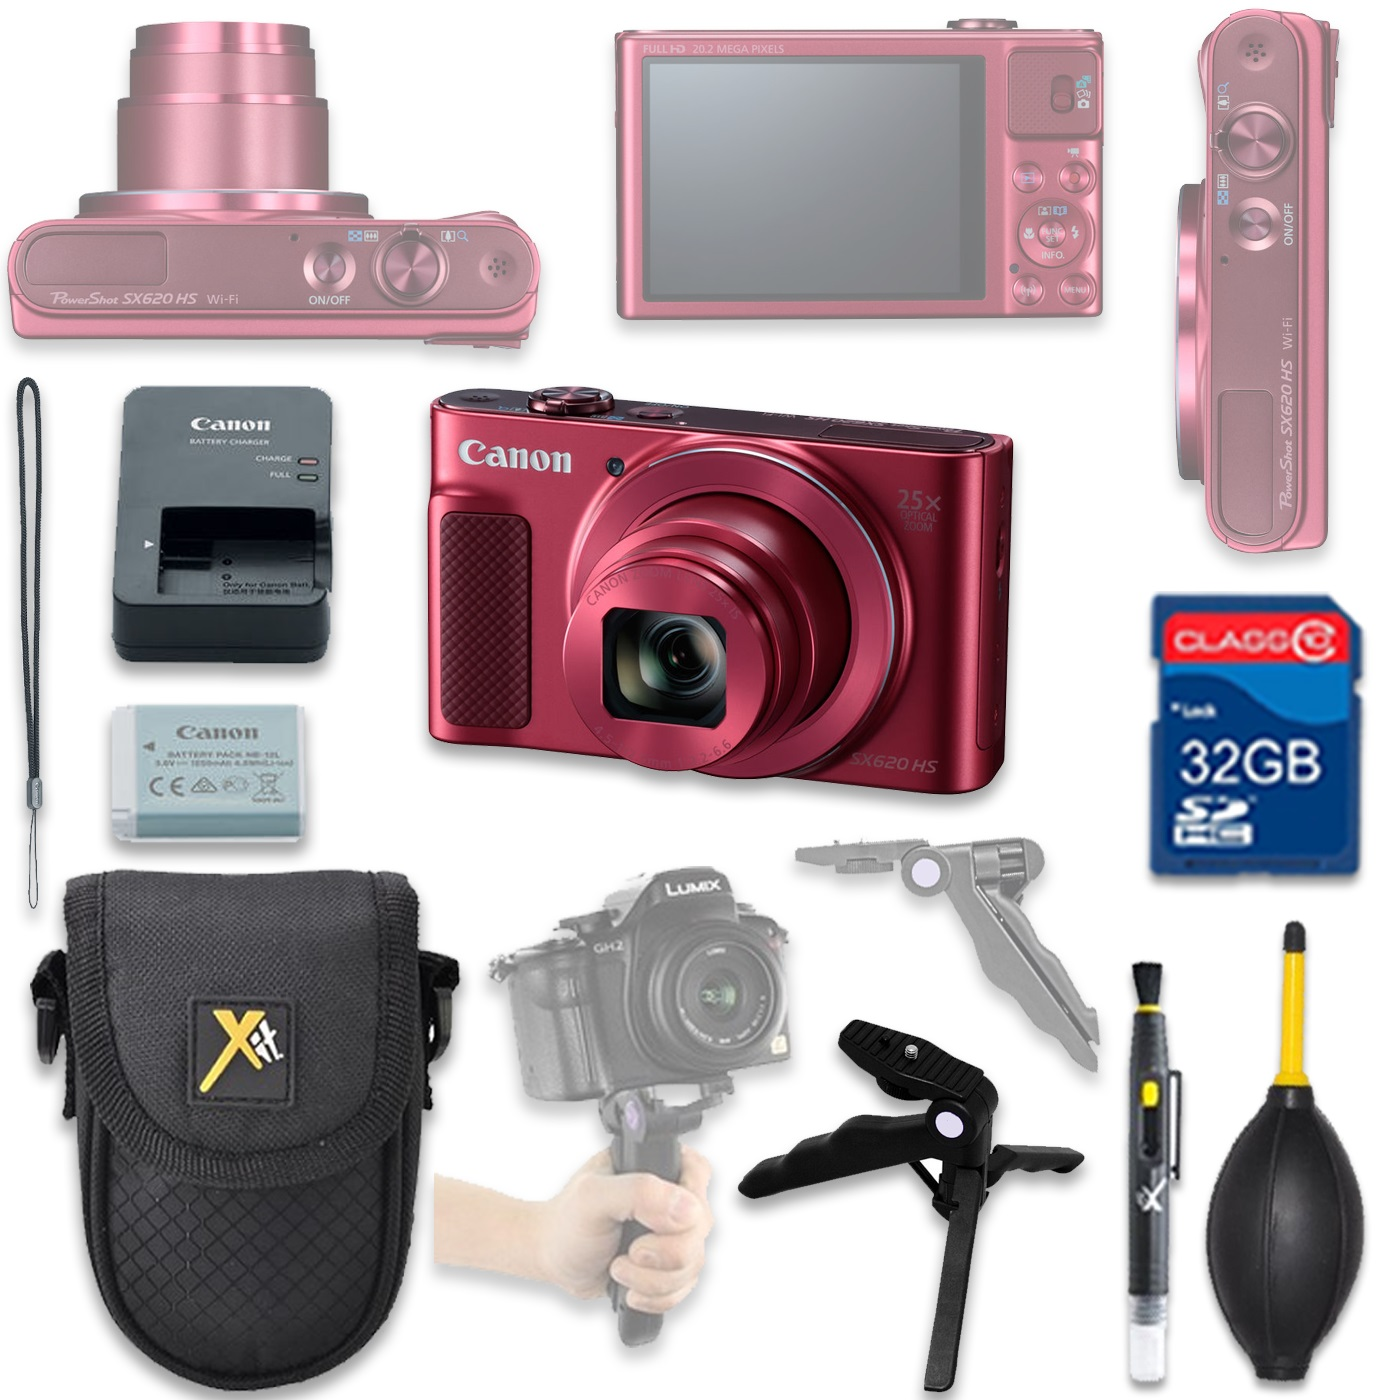 Canon PowerShot SX620 HS Digital Camera(red) with 32GB SD Memory Card + Accessory Bundle